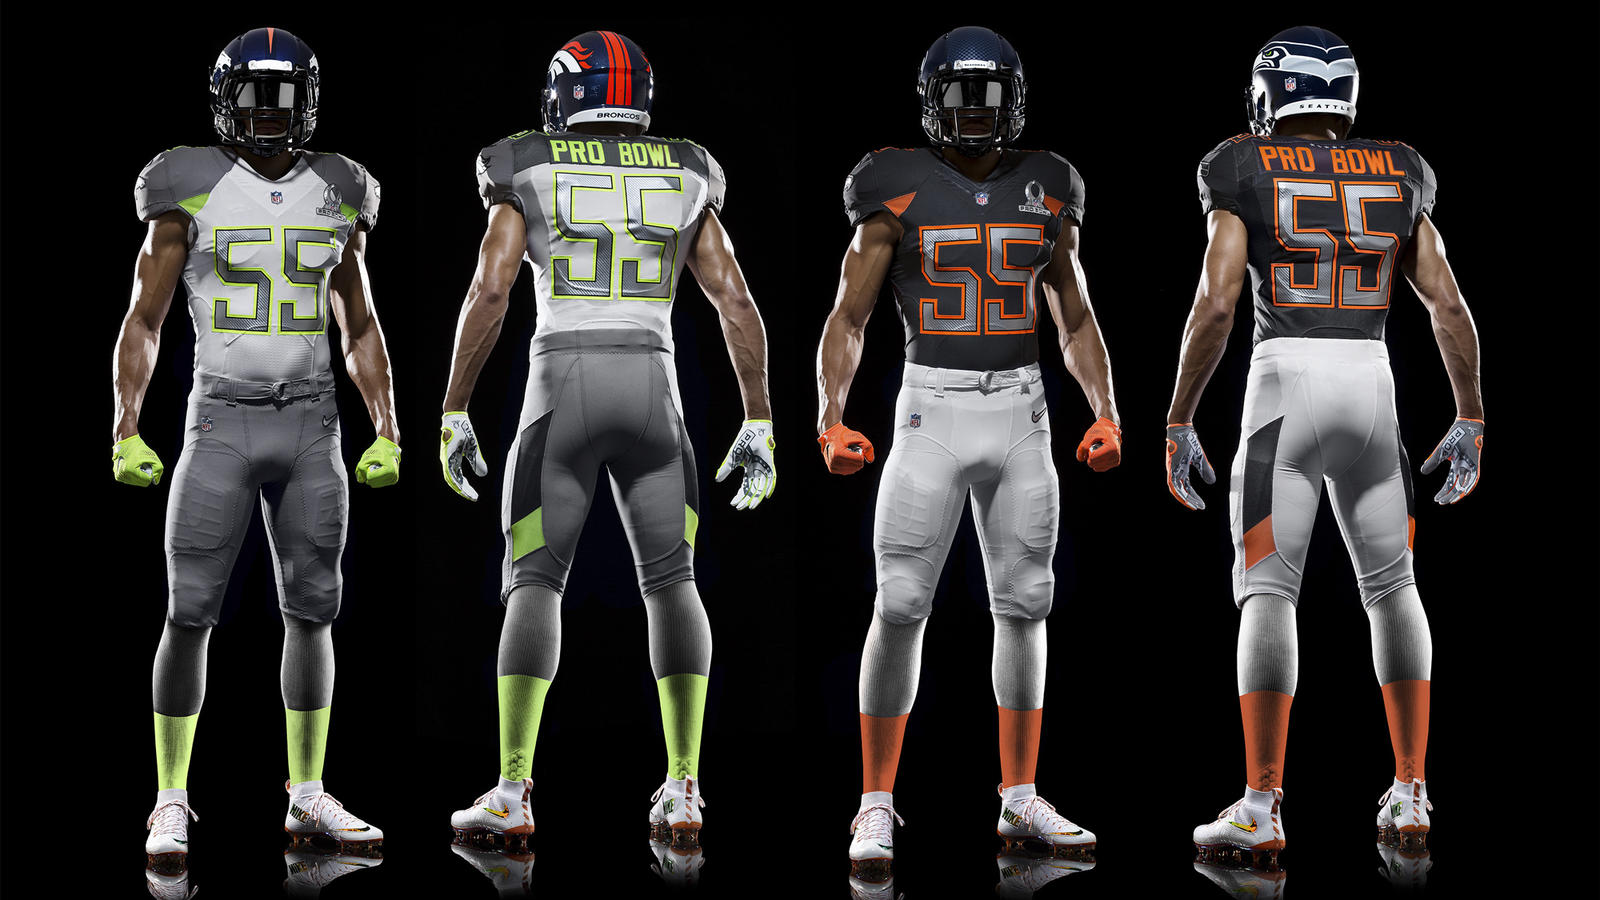 best service 0080a 39c78 Nike NFL Pro Bowl Uniforms Bring Fantasy Football Format to ...